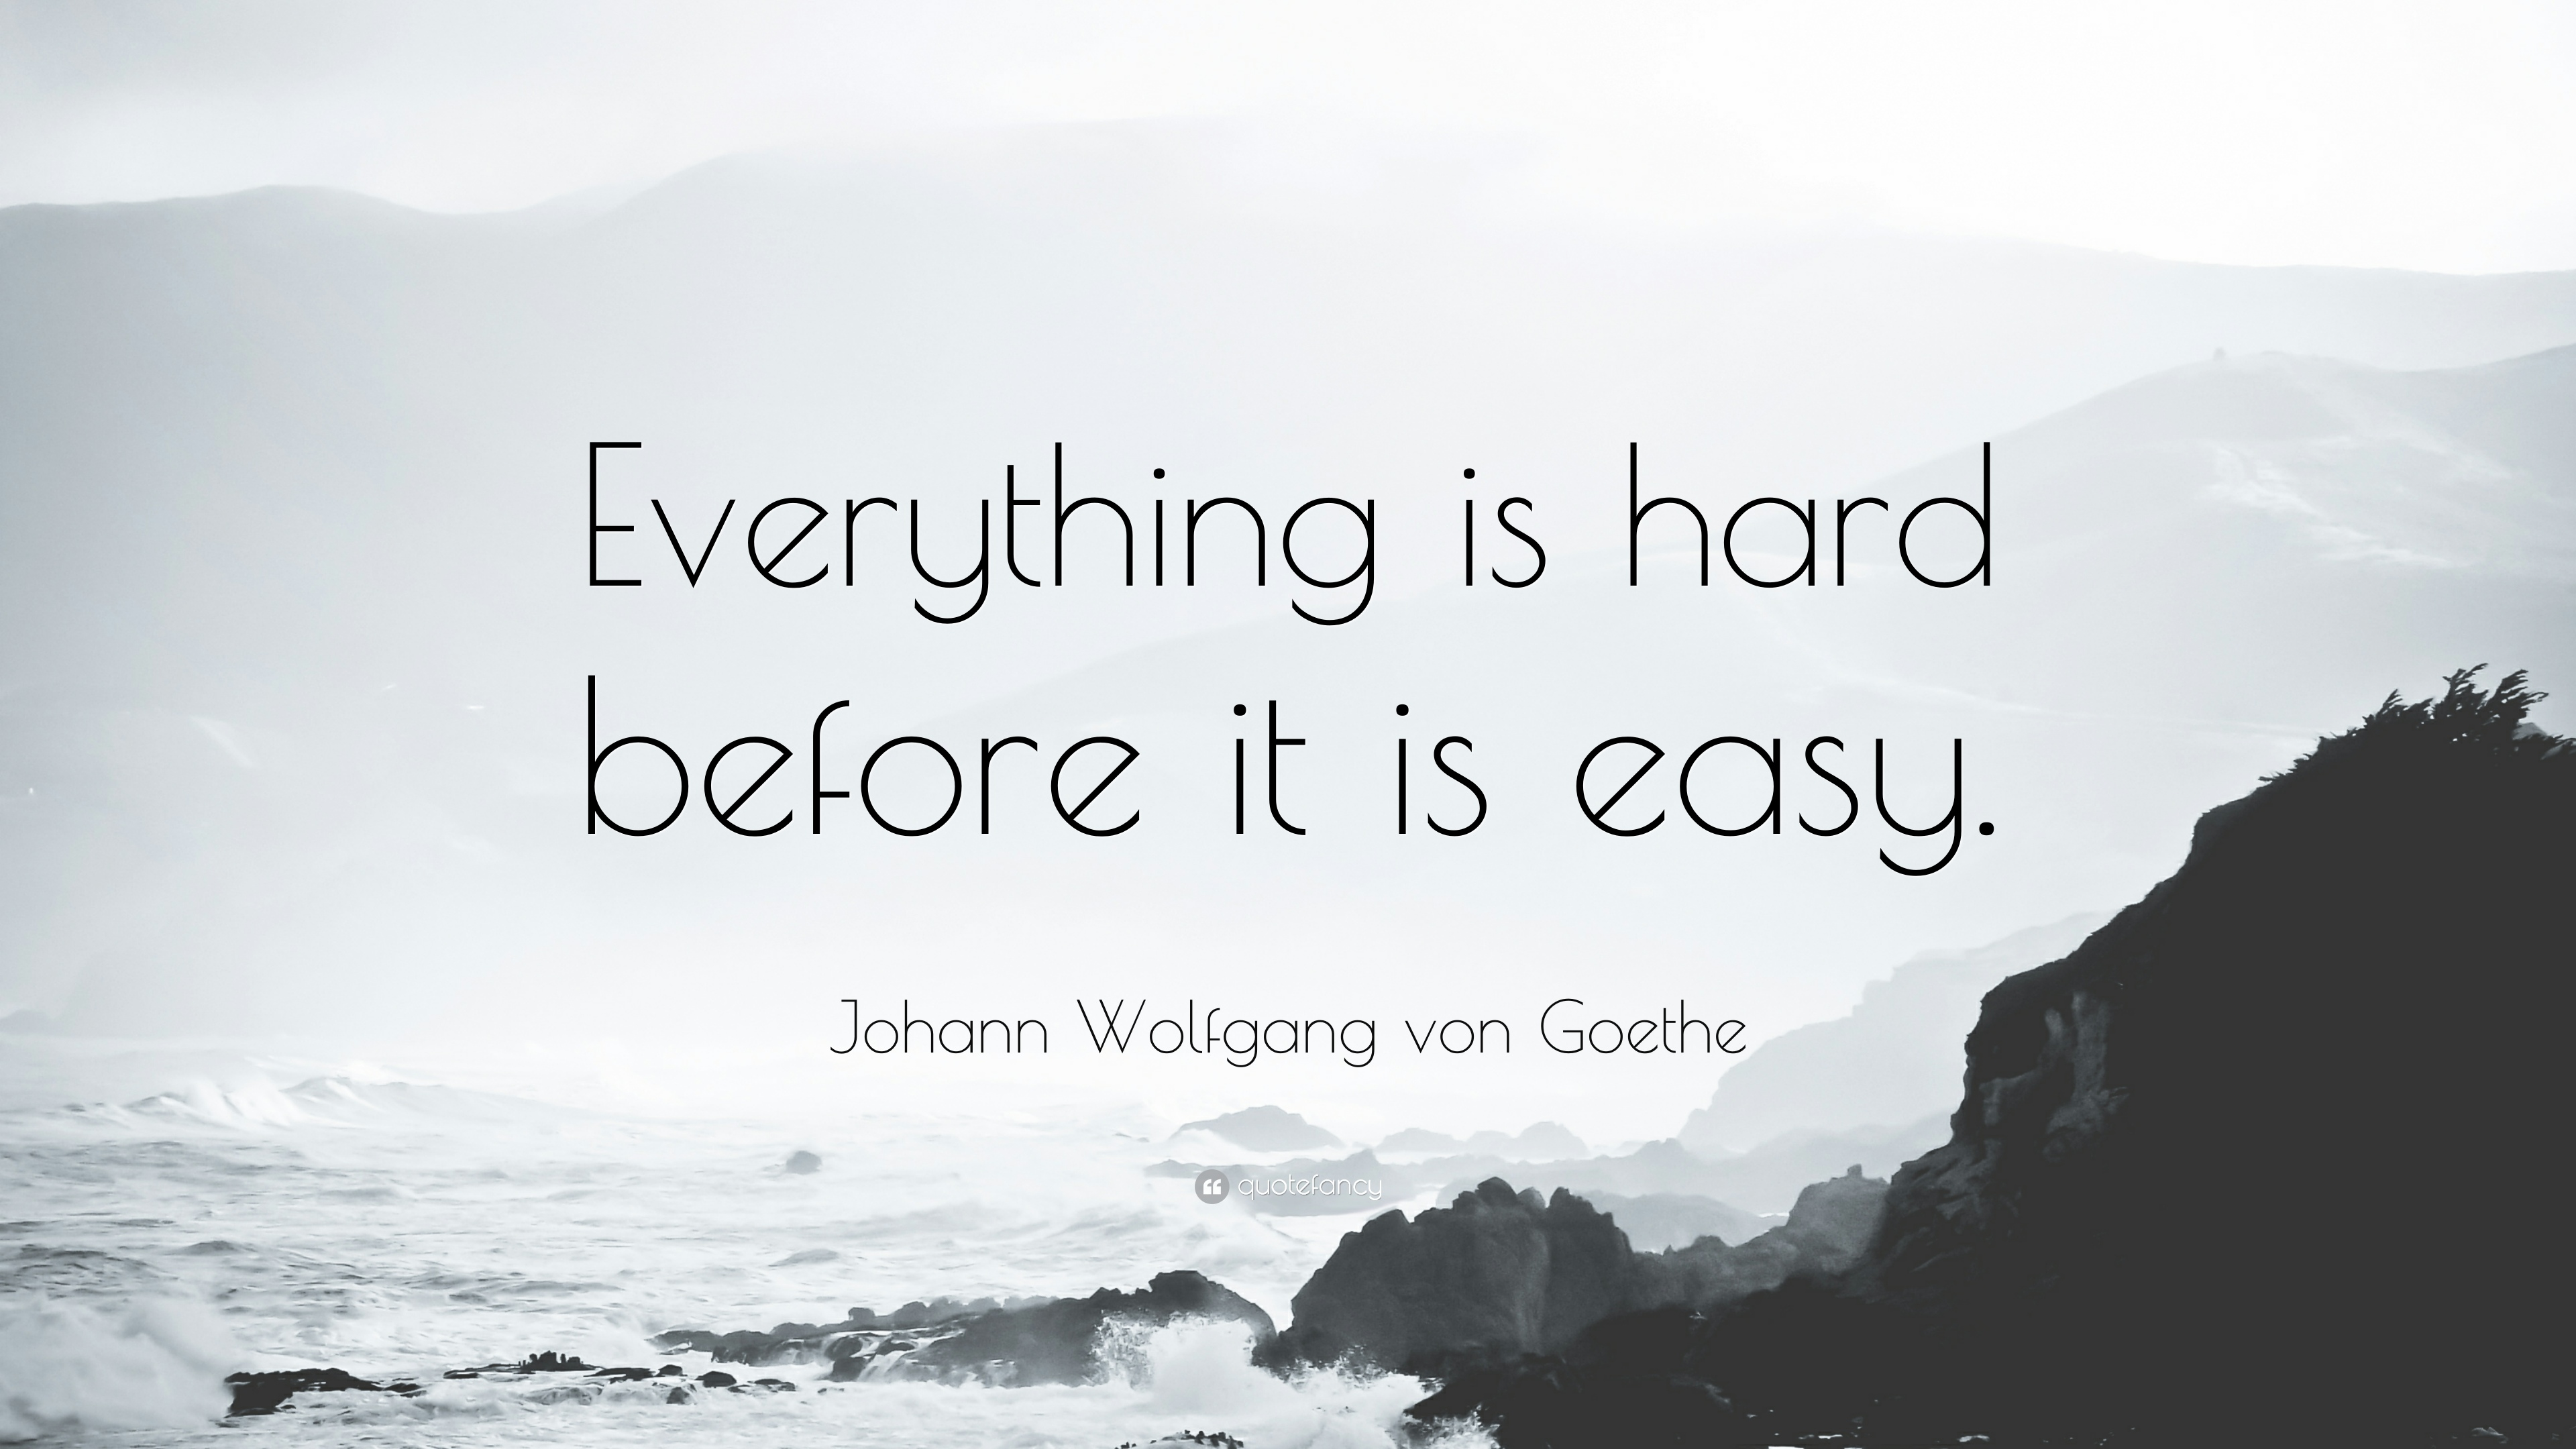 johann wolfgang von goethe quote everything is hard before it is